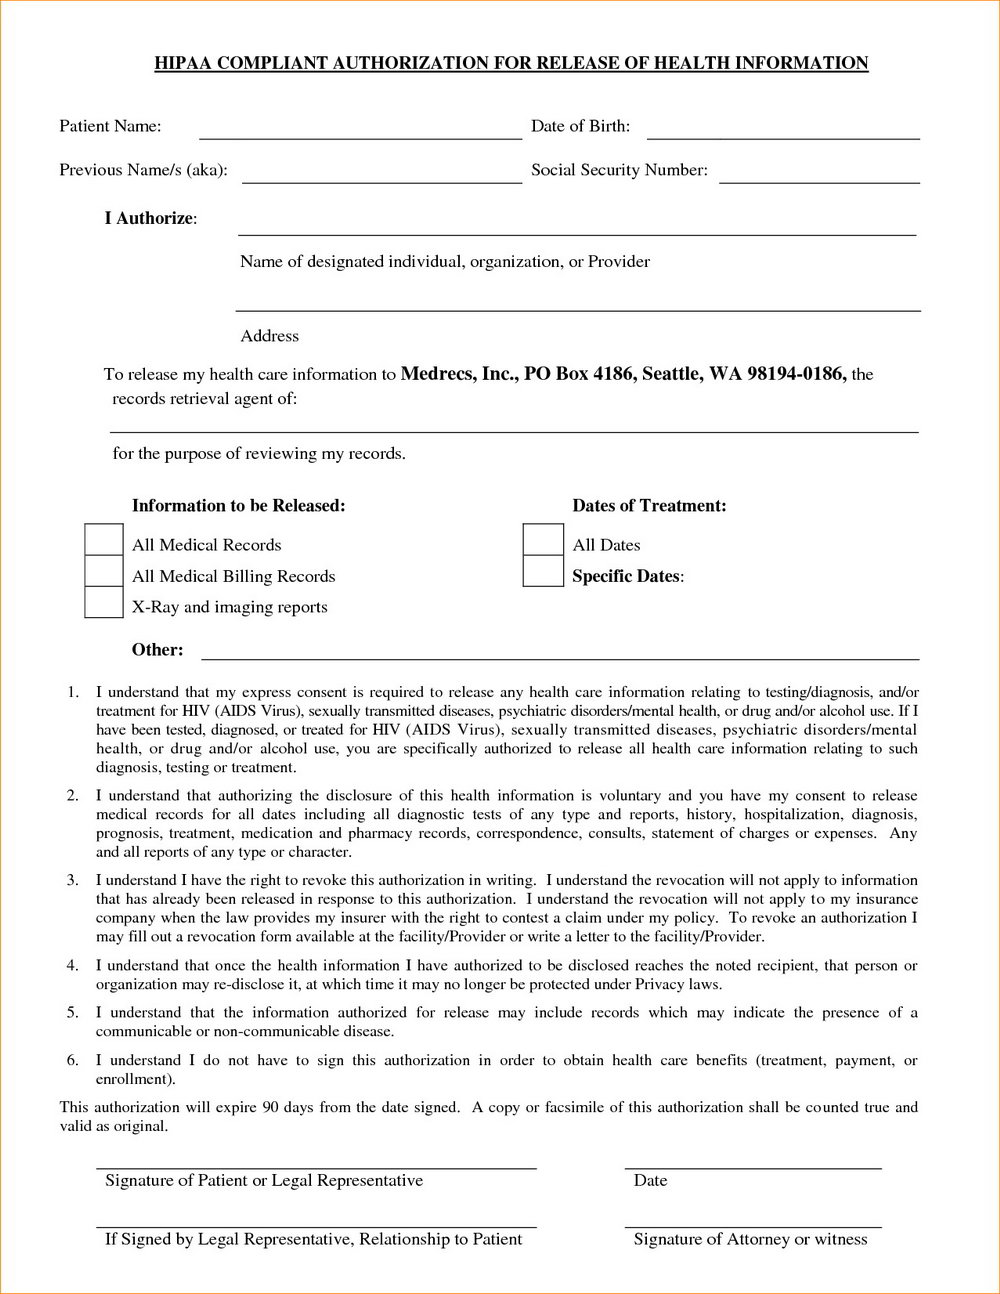 Hipaa Compliance Forms Free Download